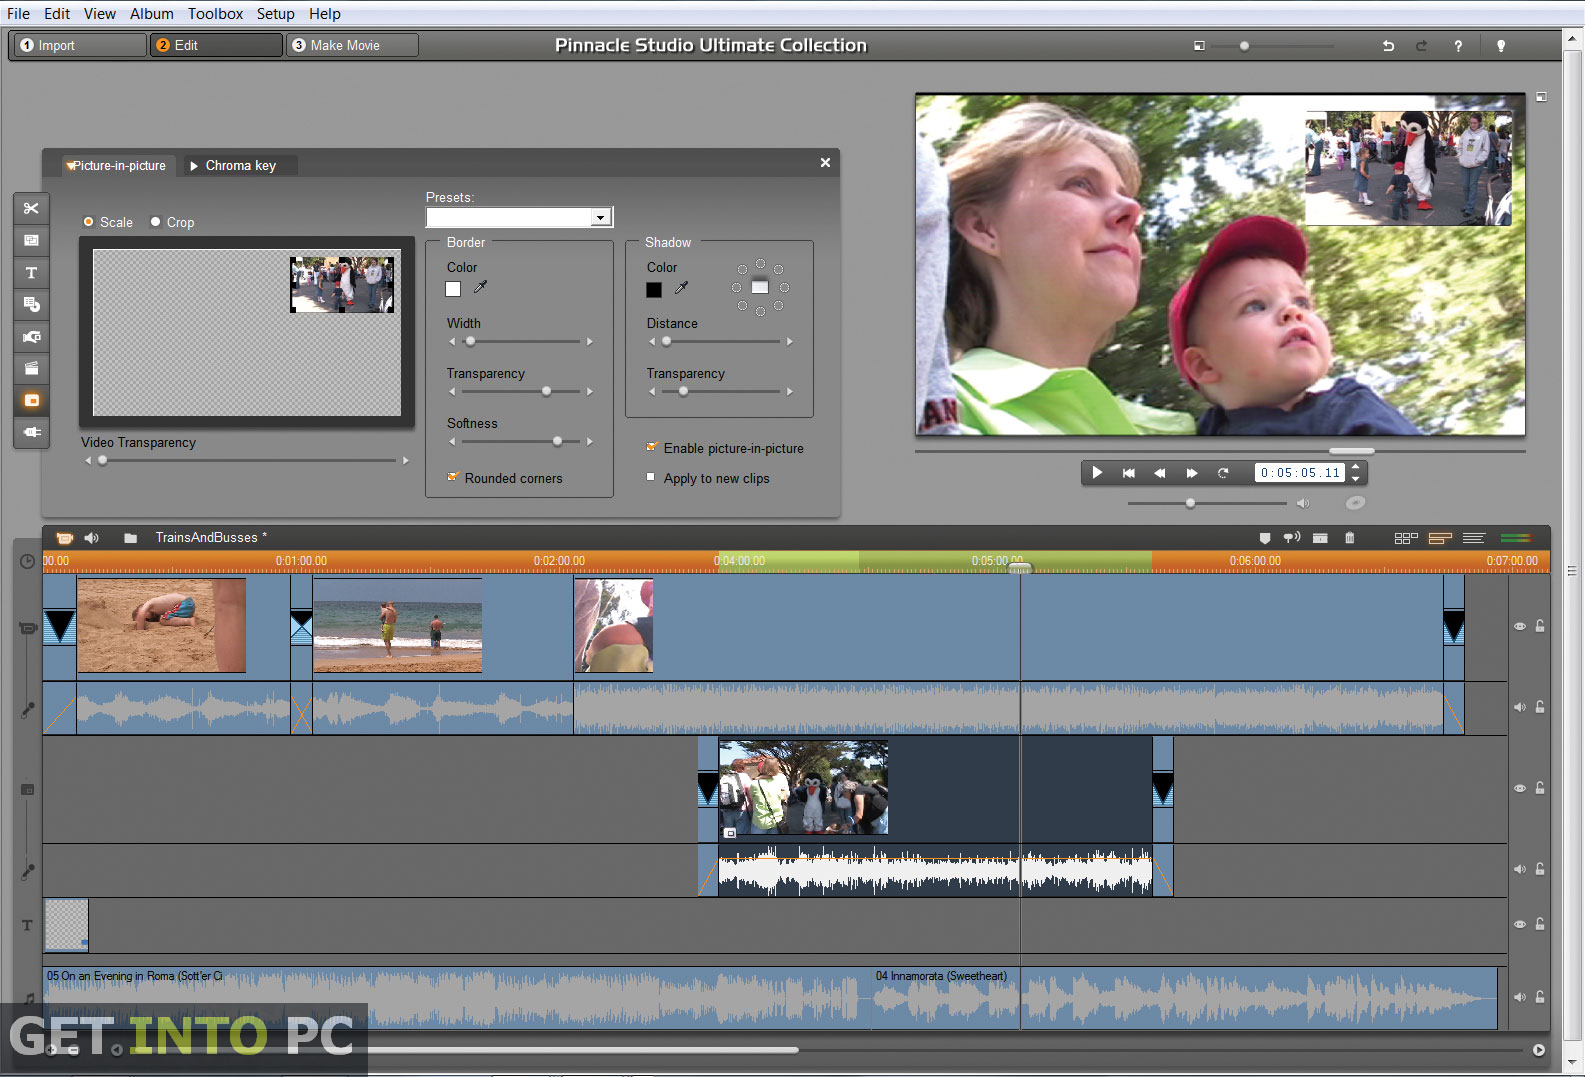 pinnacle studio hd editing software free download